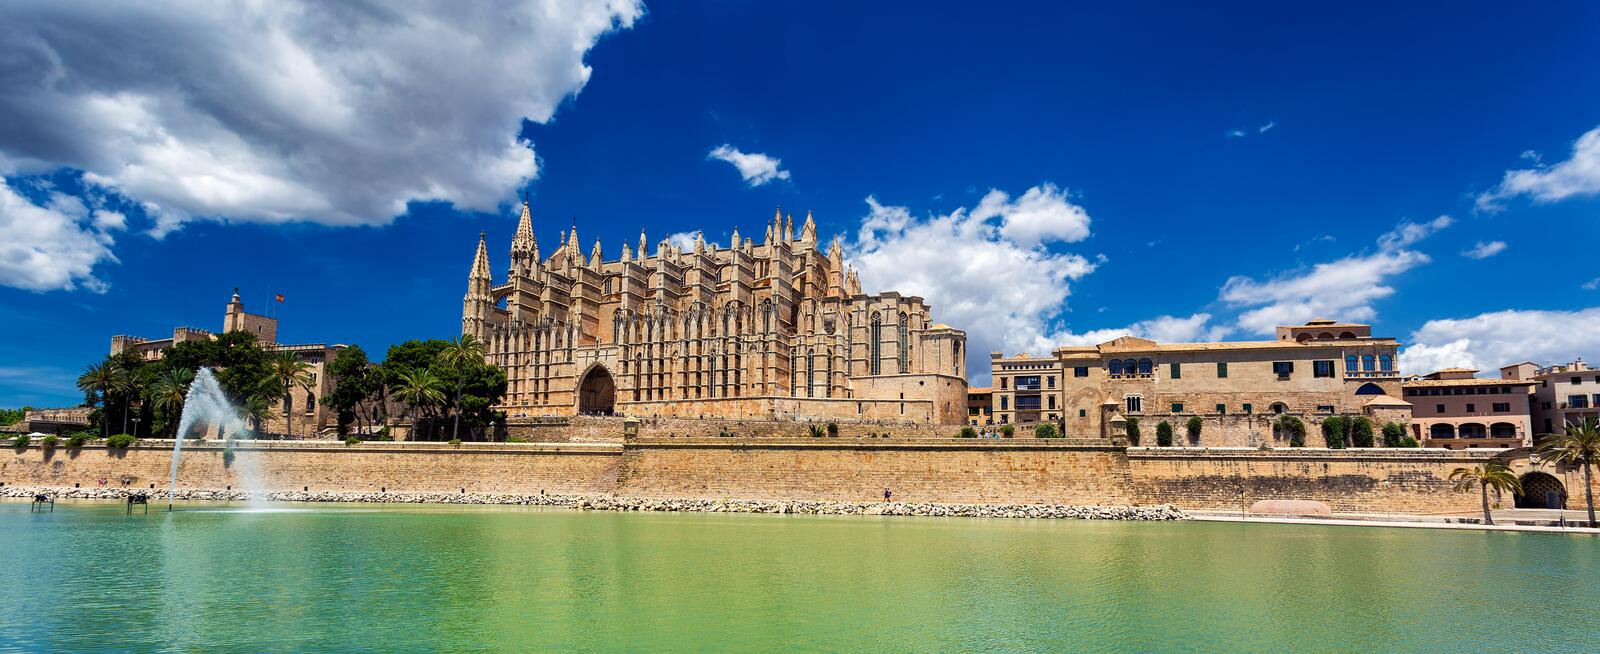 Panoramic view of La Seu - Cathedral of Santa Maria of Palma, Palma de Mallorca royalty free stock photo